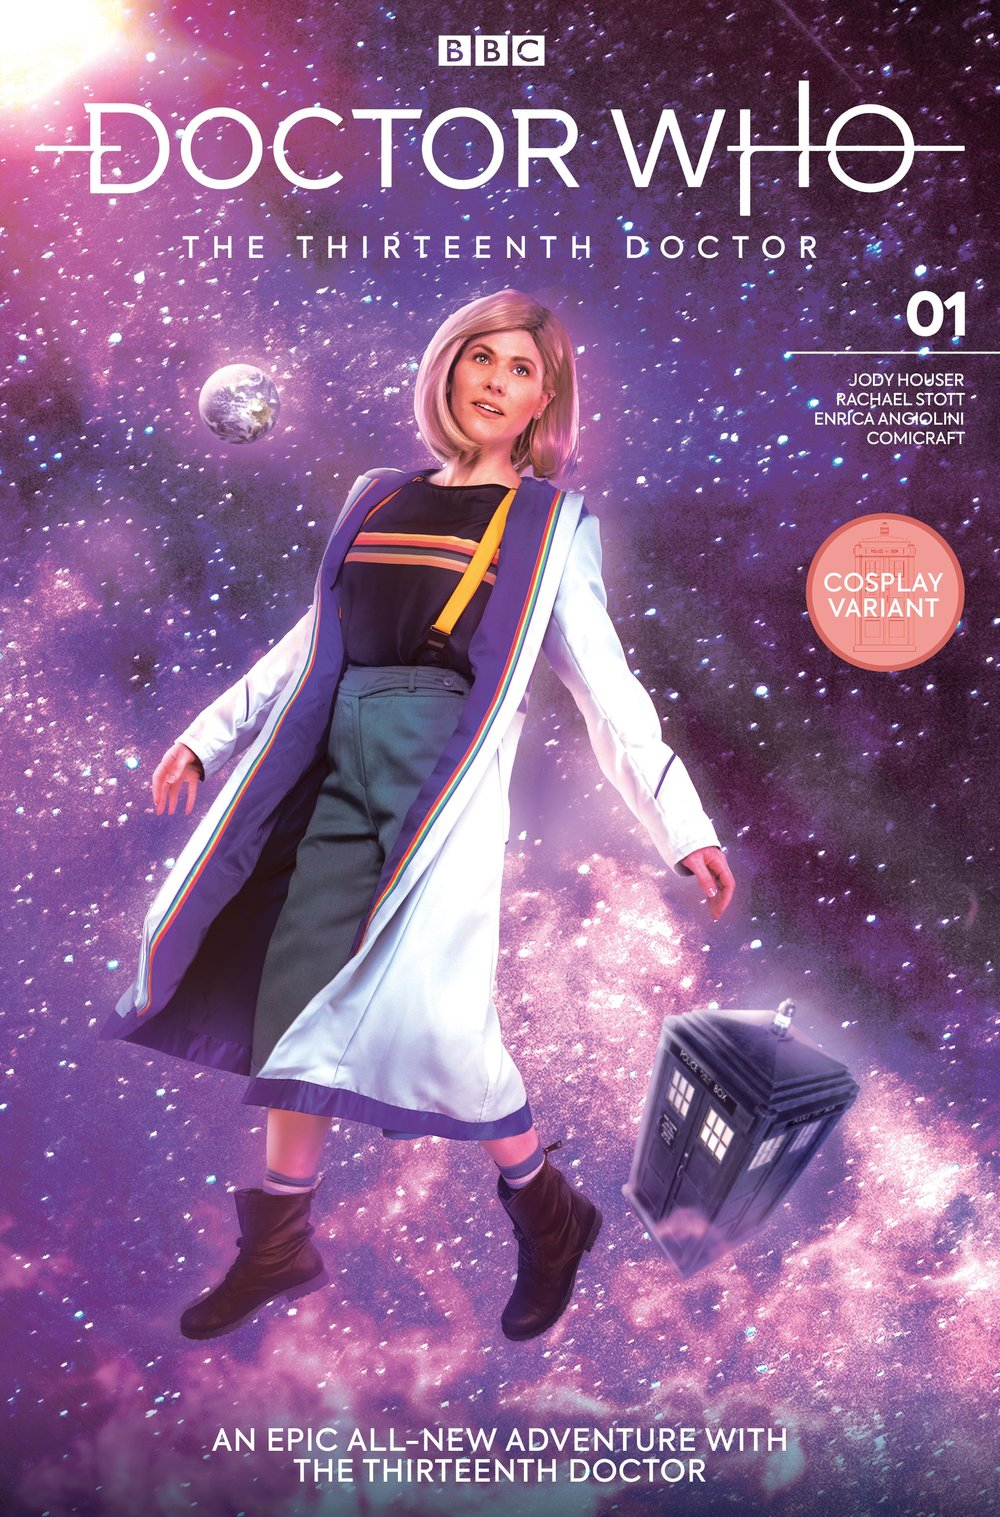 Titan Comics : Doctor Who -  The Thirteenth Doctor # 1  - Cover K: Cosplay Variant  (order code: AUG182231) Photographer:  Shannon Cottrell  Makeup & Wig Styling:  Jessica Mills  Cosplay Jacket Designer:  Chad Evett  Assistance & Behind The Scenes:  Lauren Elisabeth  Special Thanks: Chris Thompson & Andrew James of Titan, Brad Hansen, and Bob Mitsch